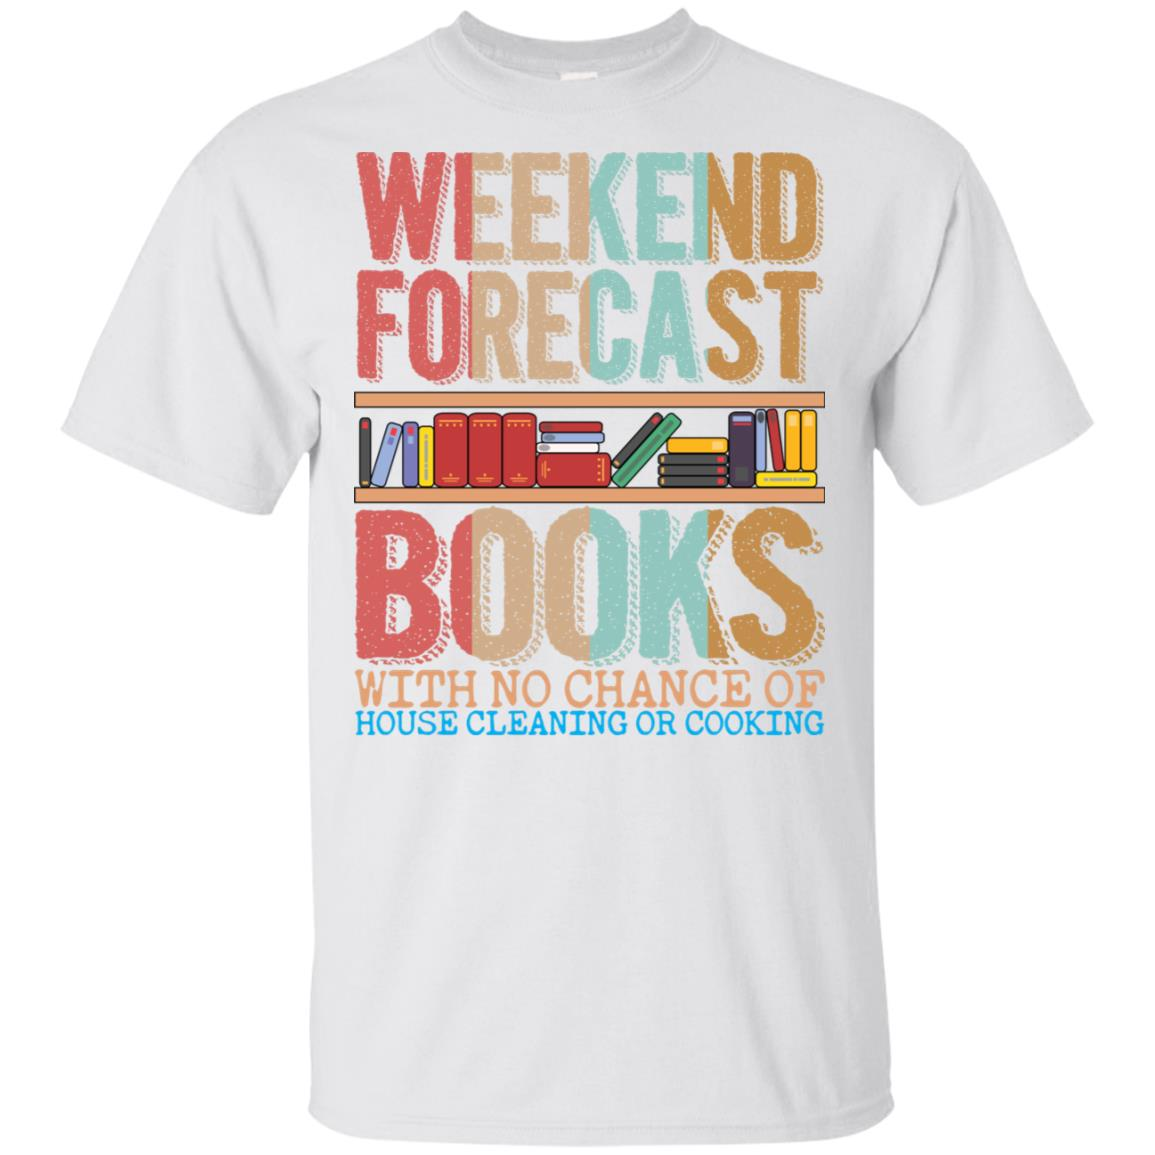 Weekend Forecast Books No Cleaning Or Cooking Funny Ls Unisex Short Sleeve